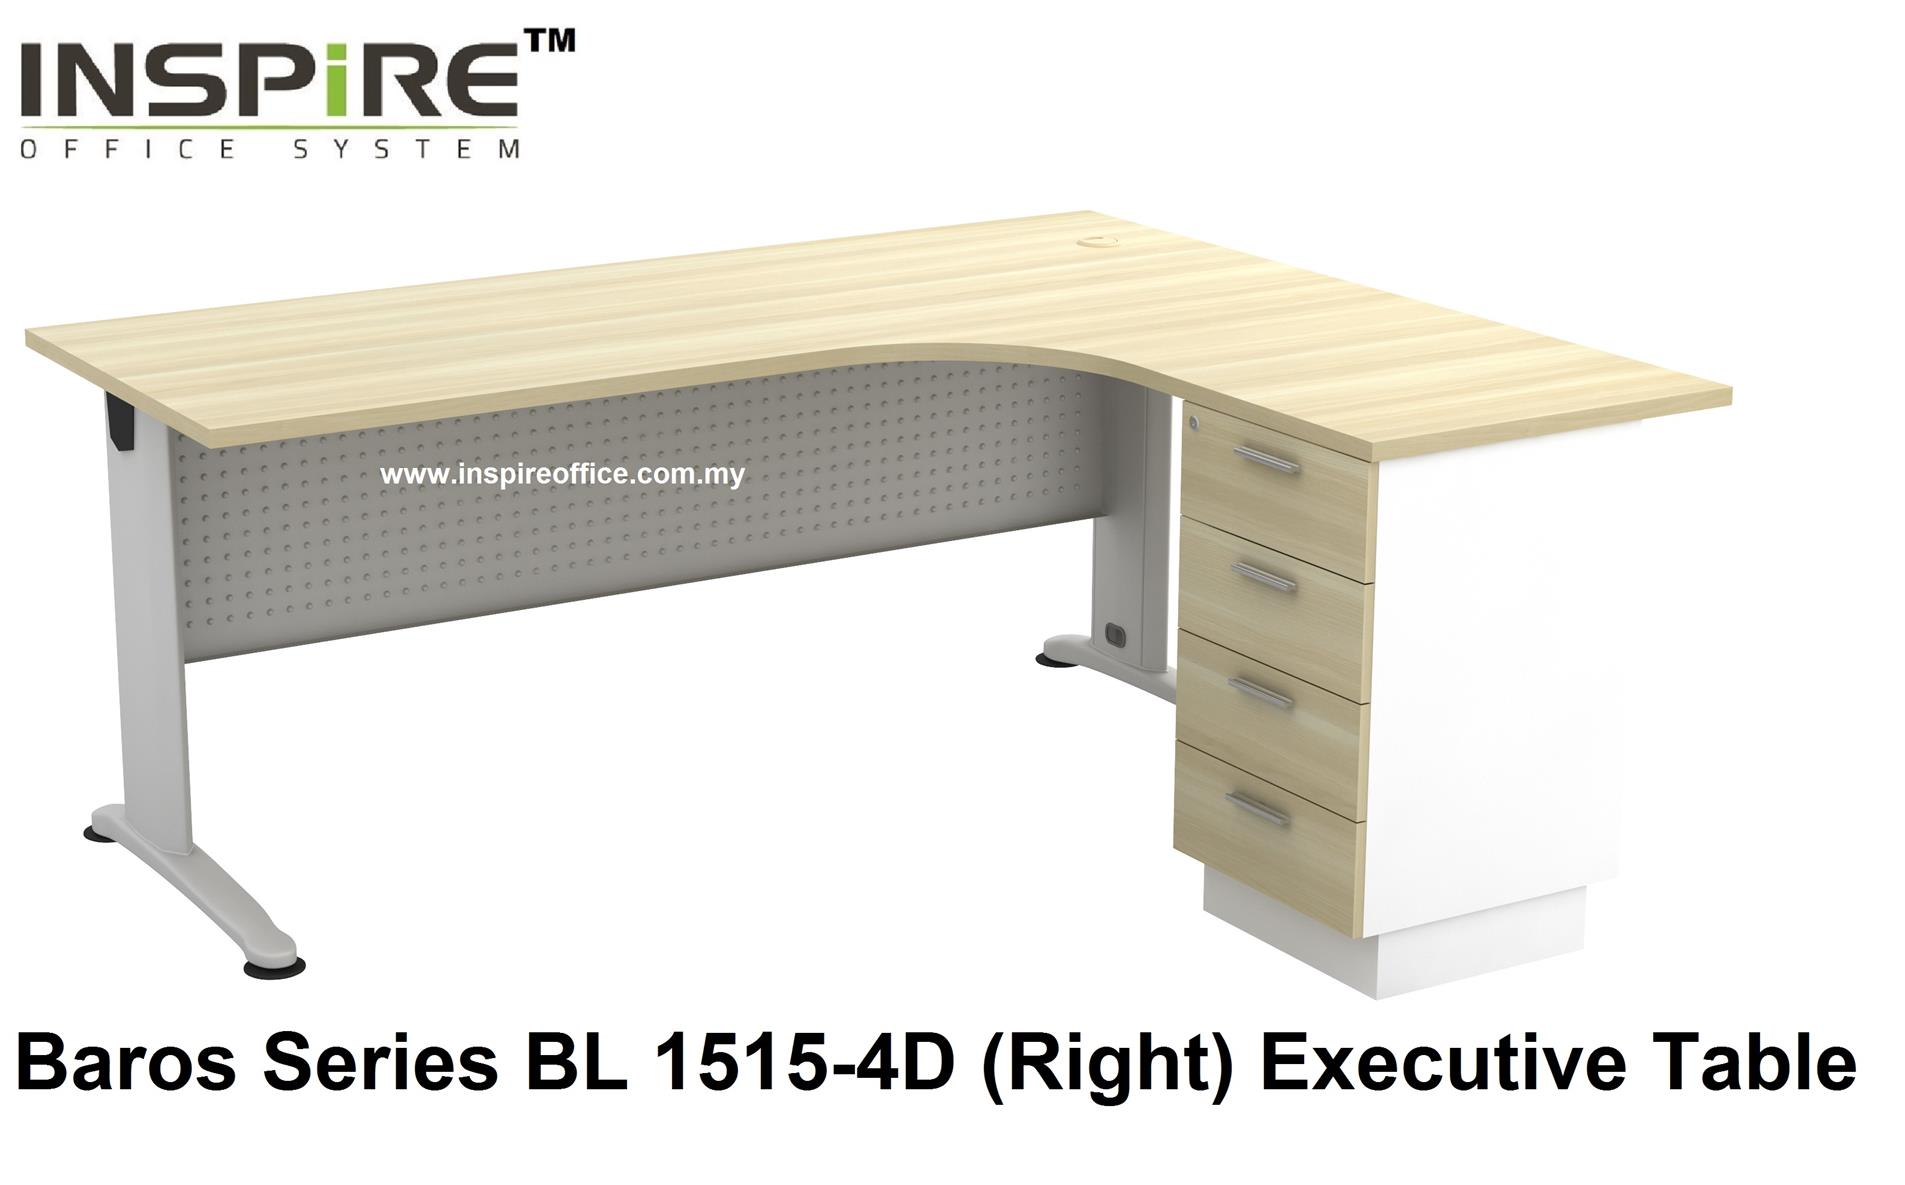 BL-1515-4D BAROS SERIES METAL J LEG EXECUTIVE L SHAPED TABLE